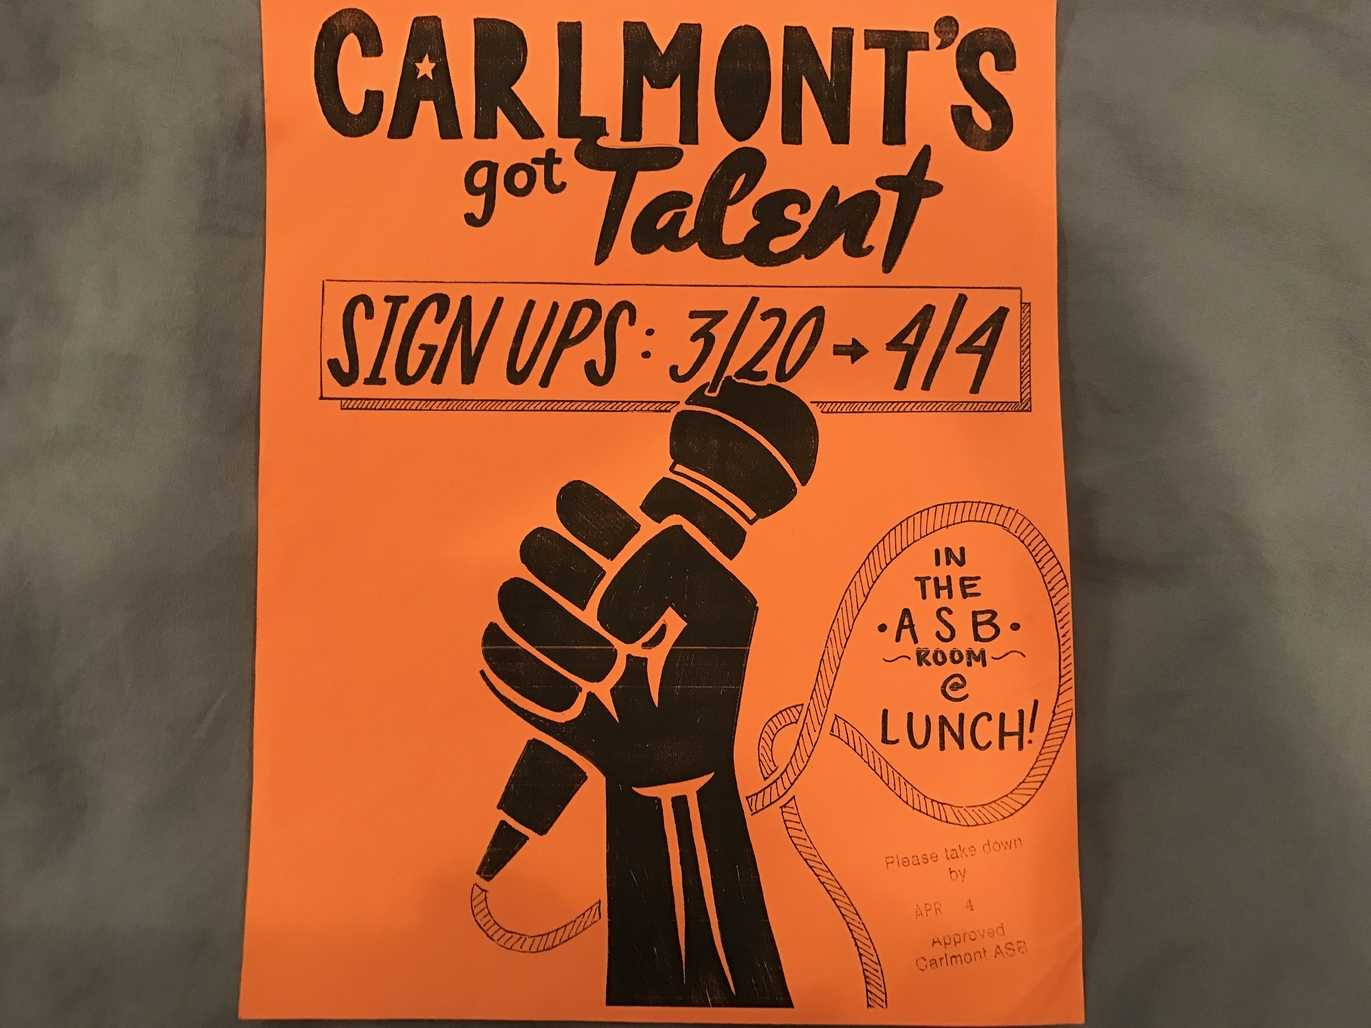 Flyers by ASB promote Carlmont's Got Talent throughout the hallways.